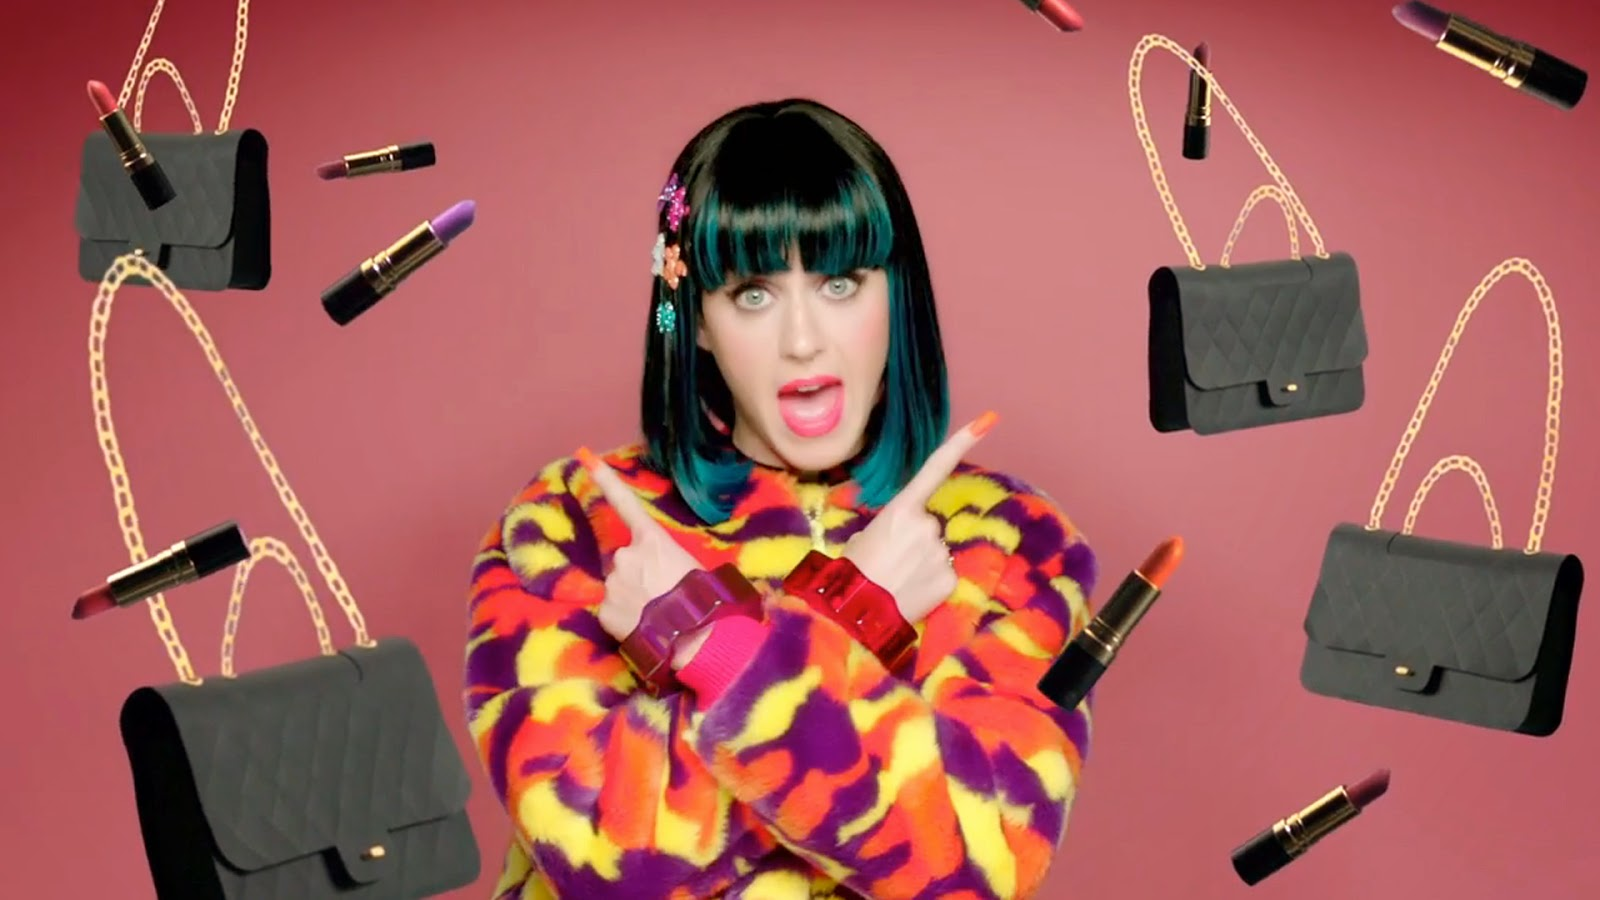 Katy Perry Prism Google Play